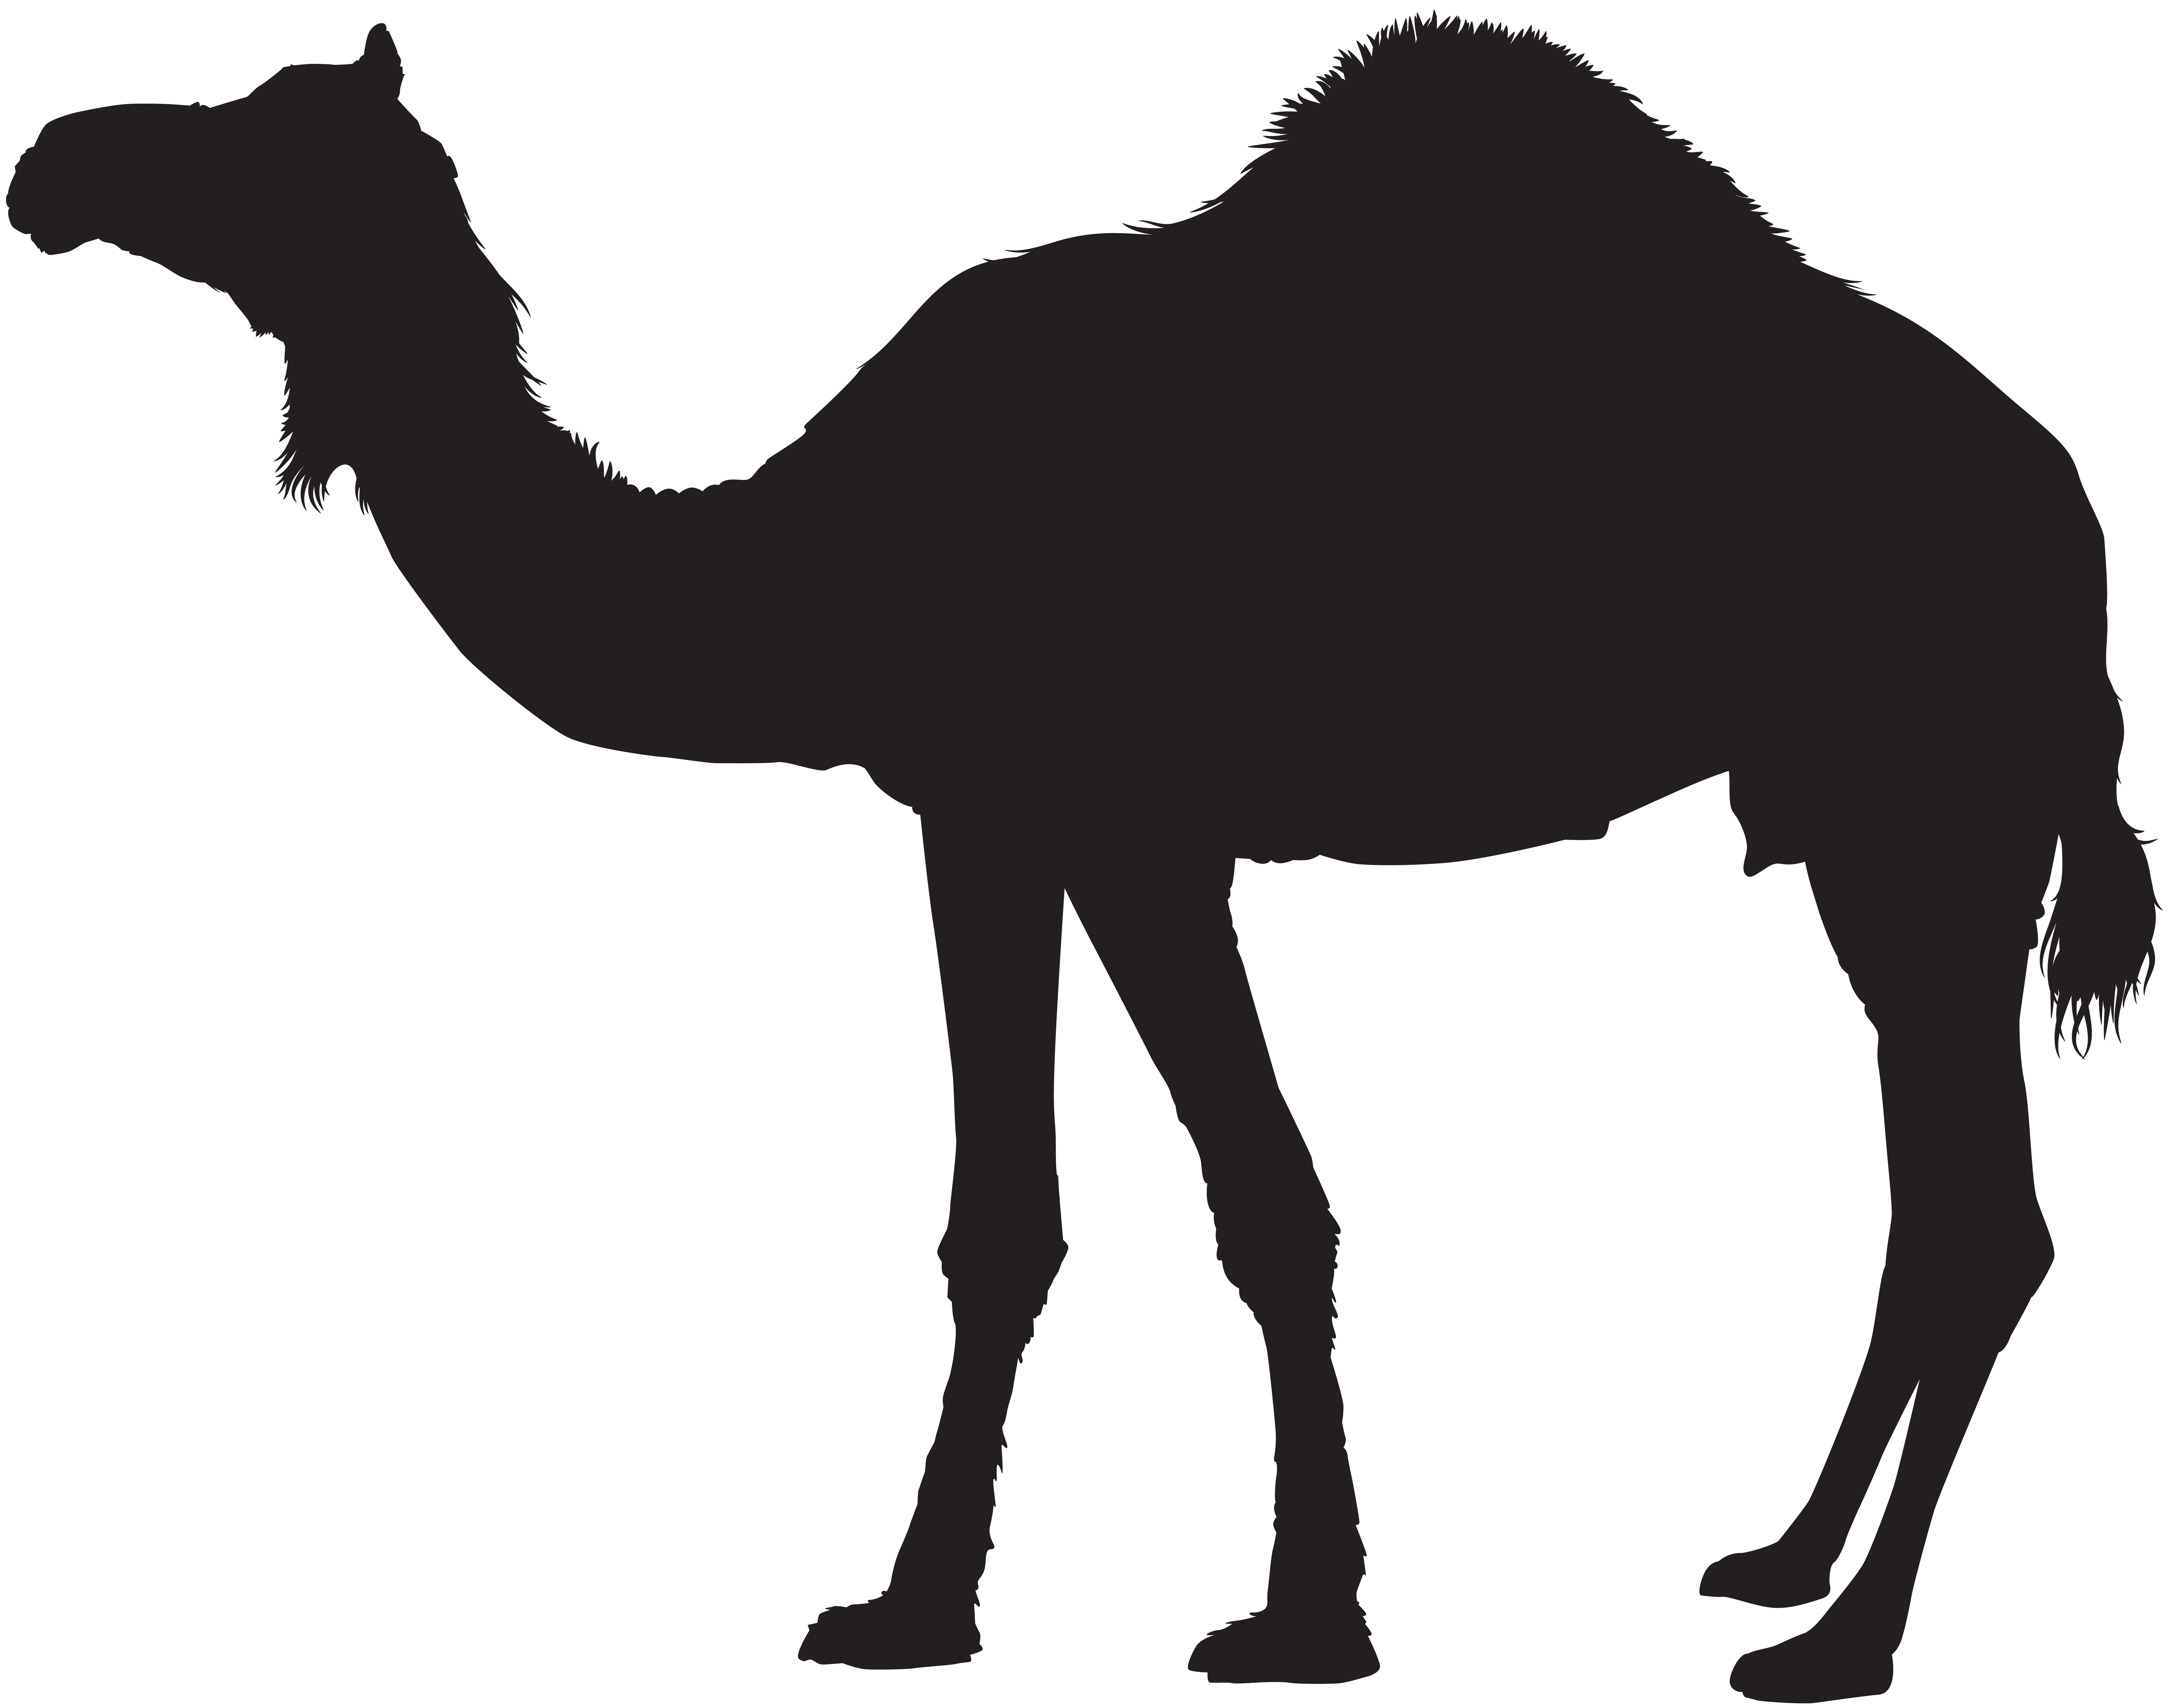 png Silhouette images at getdrawings. Camel clipart camel shadow.